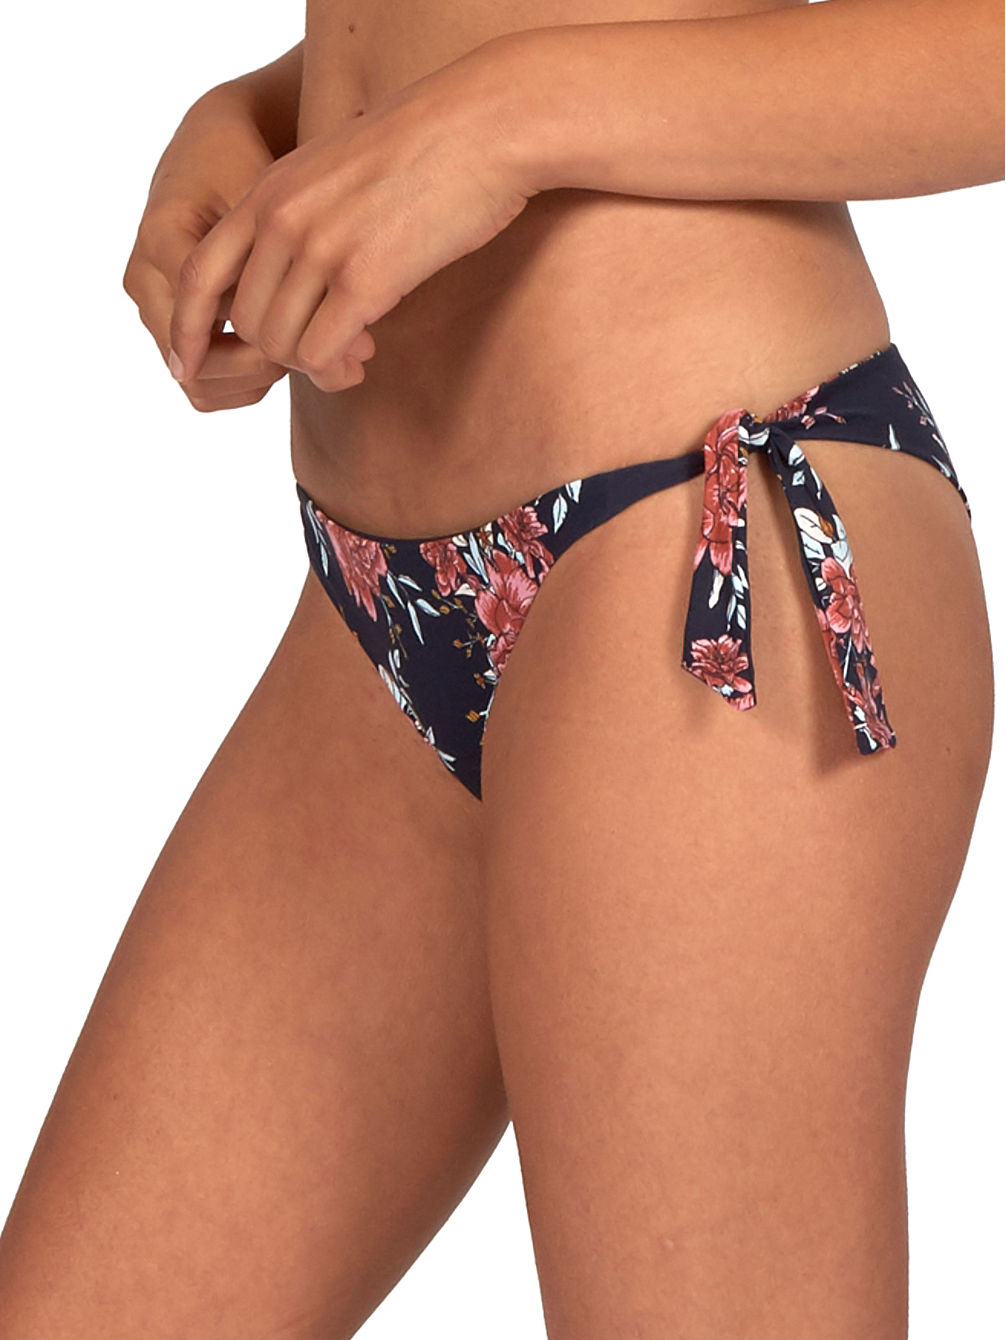 Let It Bloom Tanga Bikini Bottom